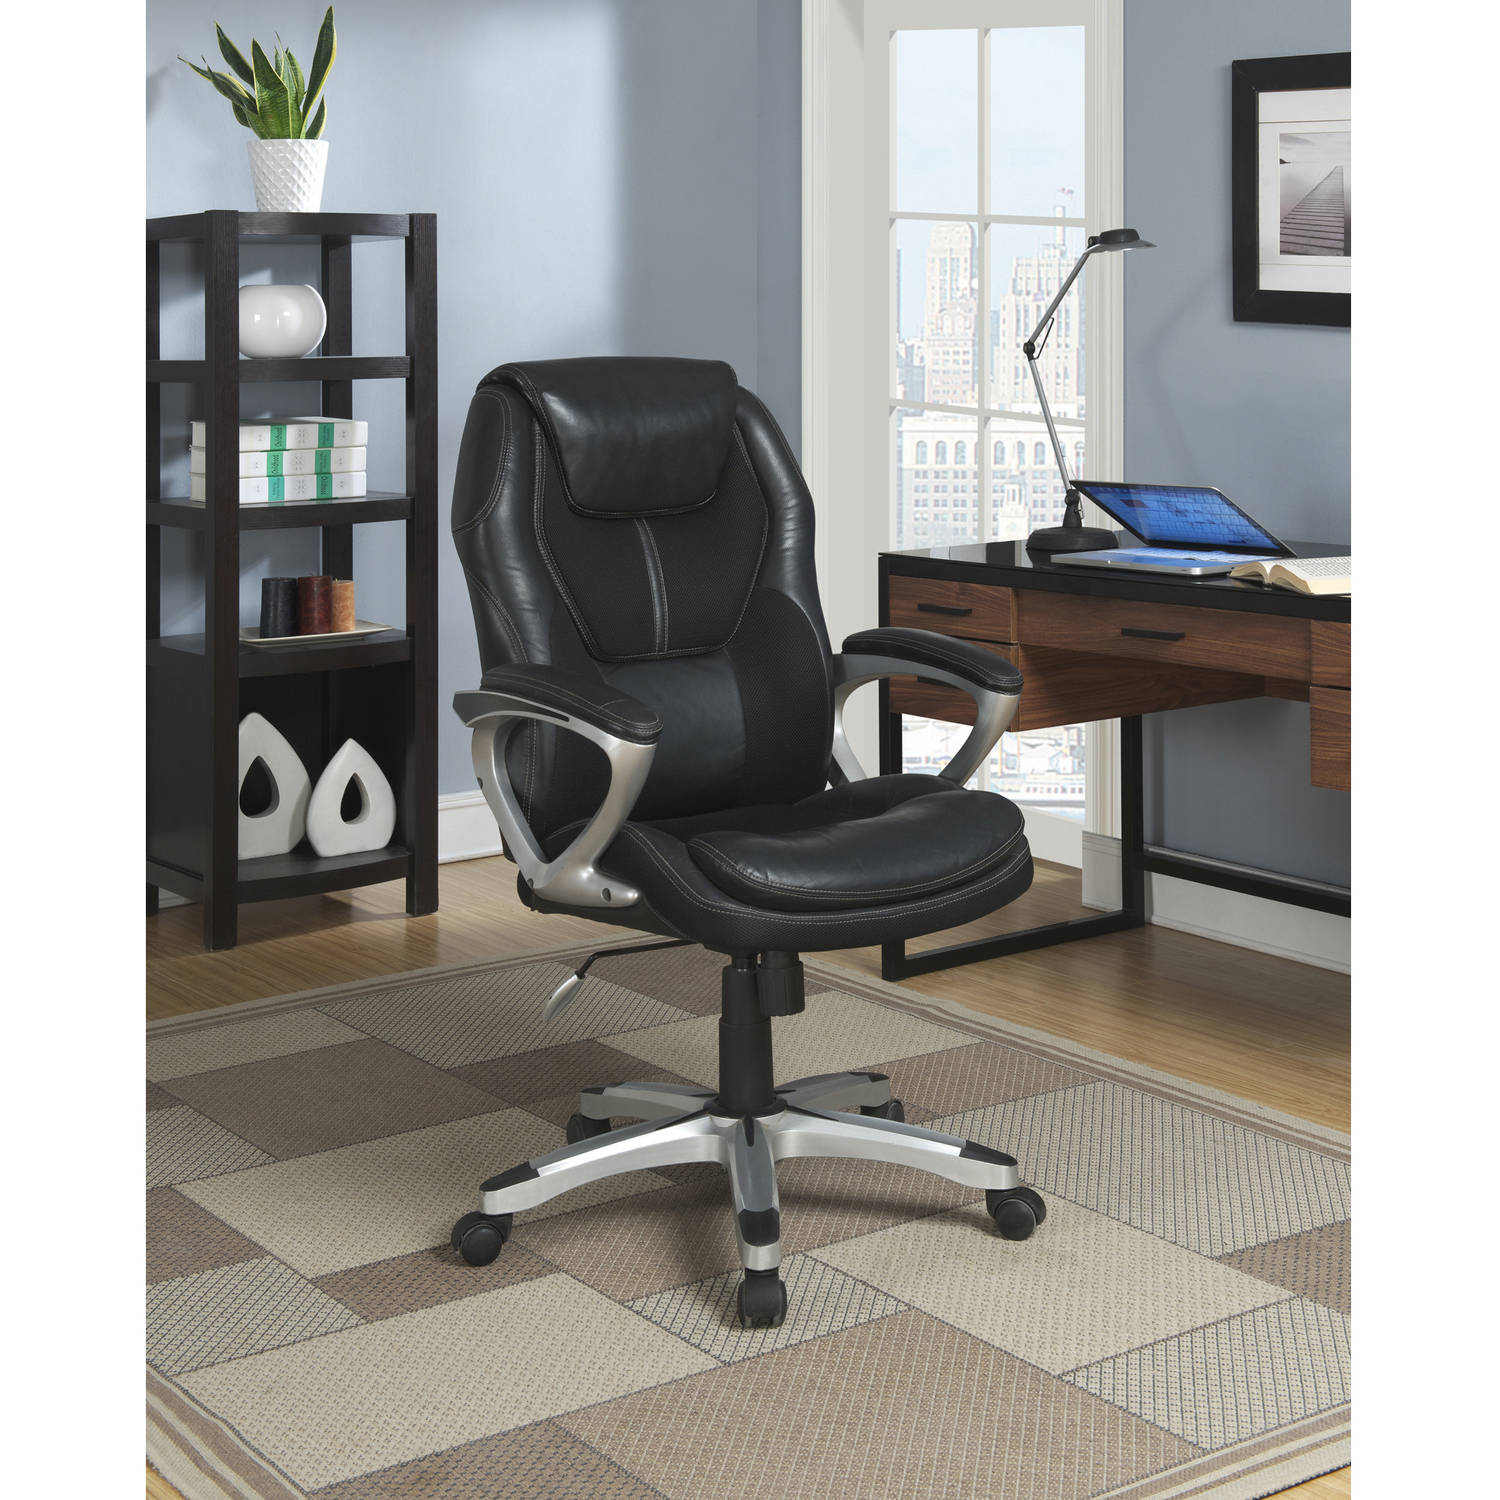 Serta Executive fice Chair Puresoft Faux Leather with Mesh